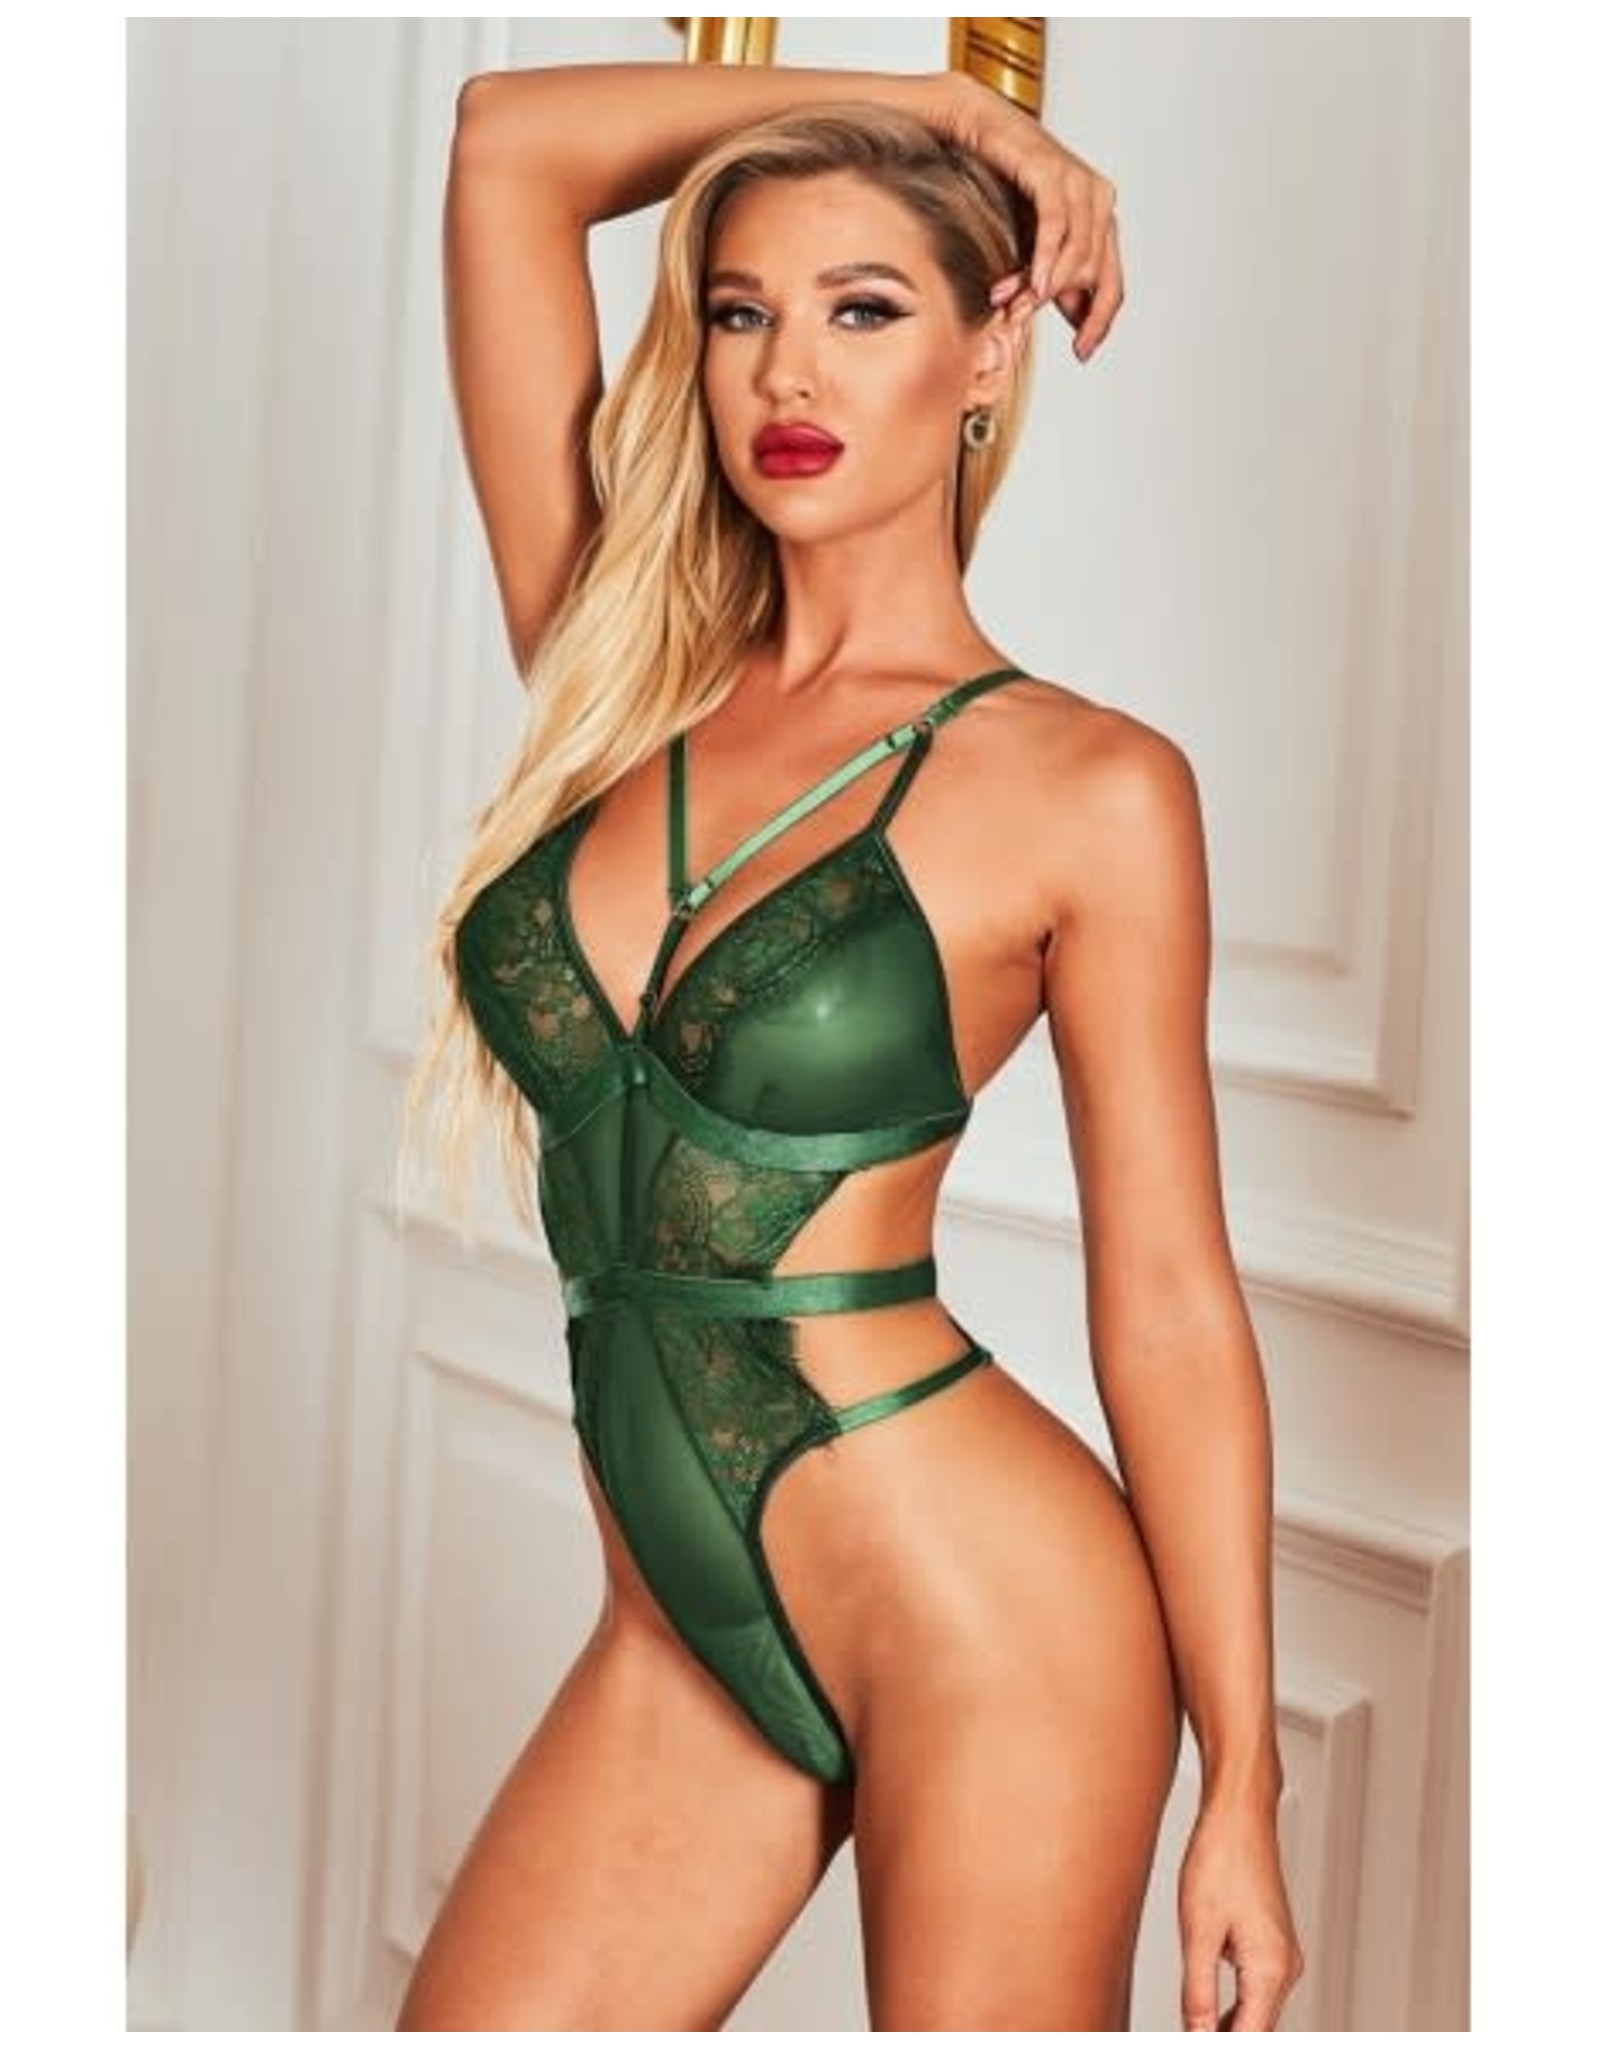 GREEN STRAPPY HOLLOW-OUT LACE TEDDY - (US 4-6)S